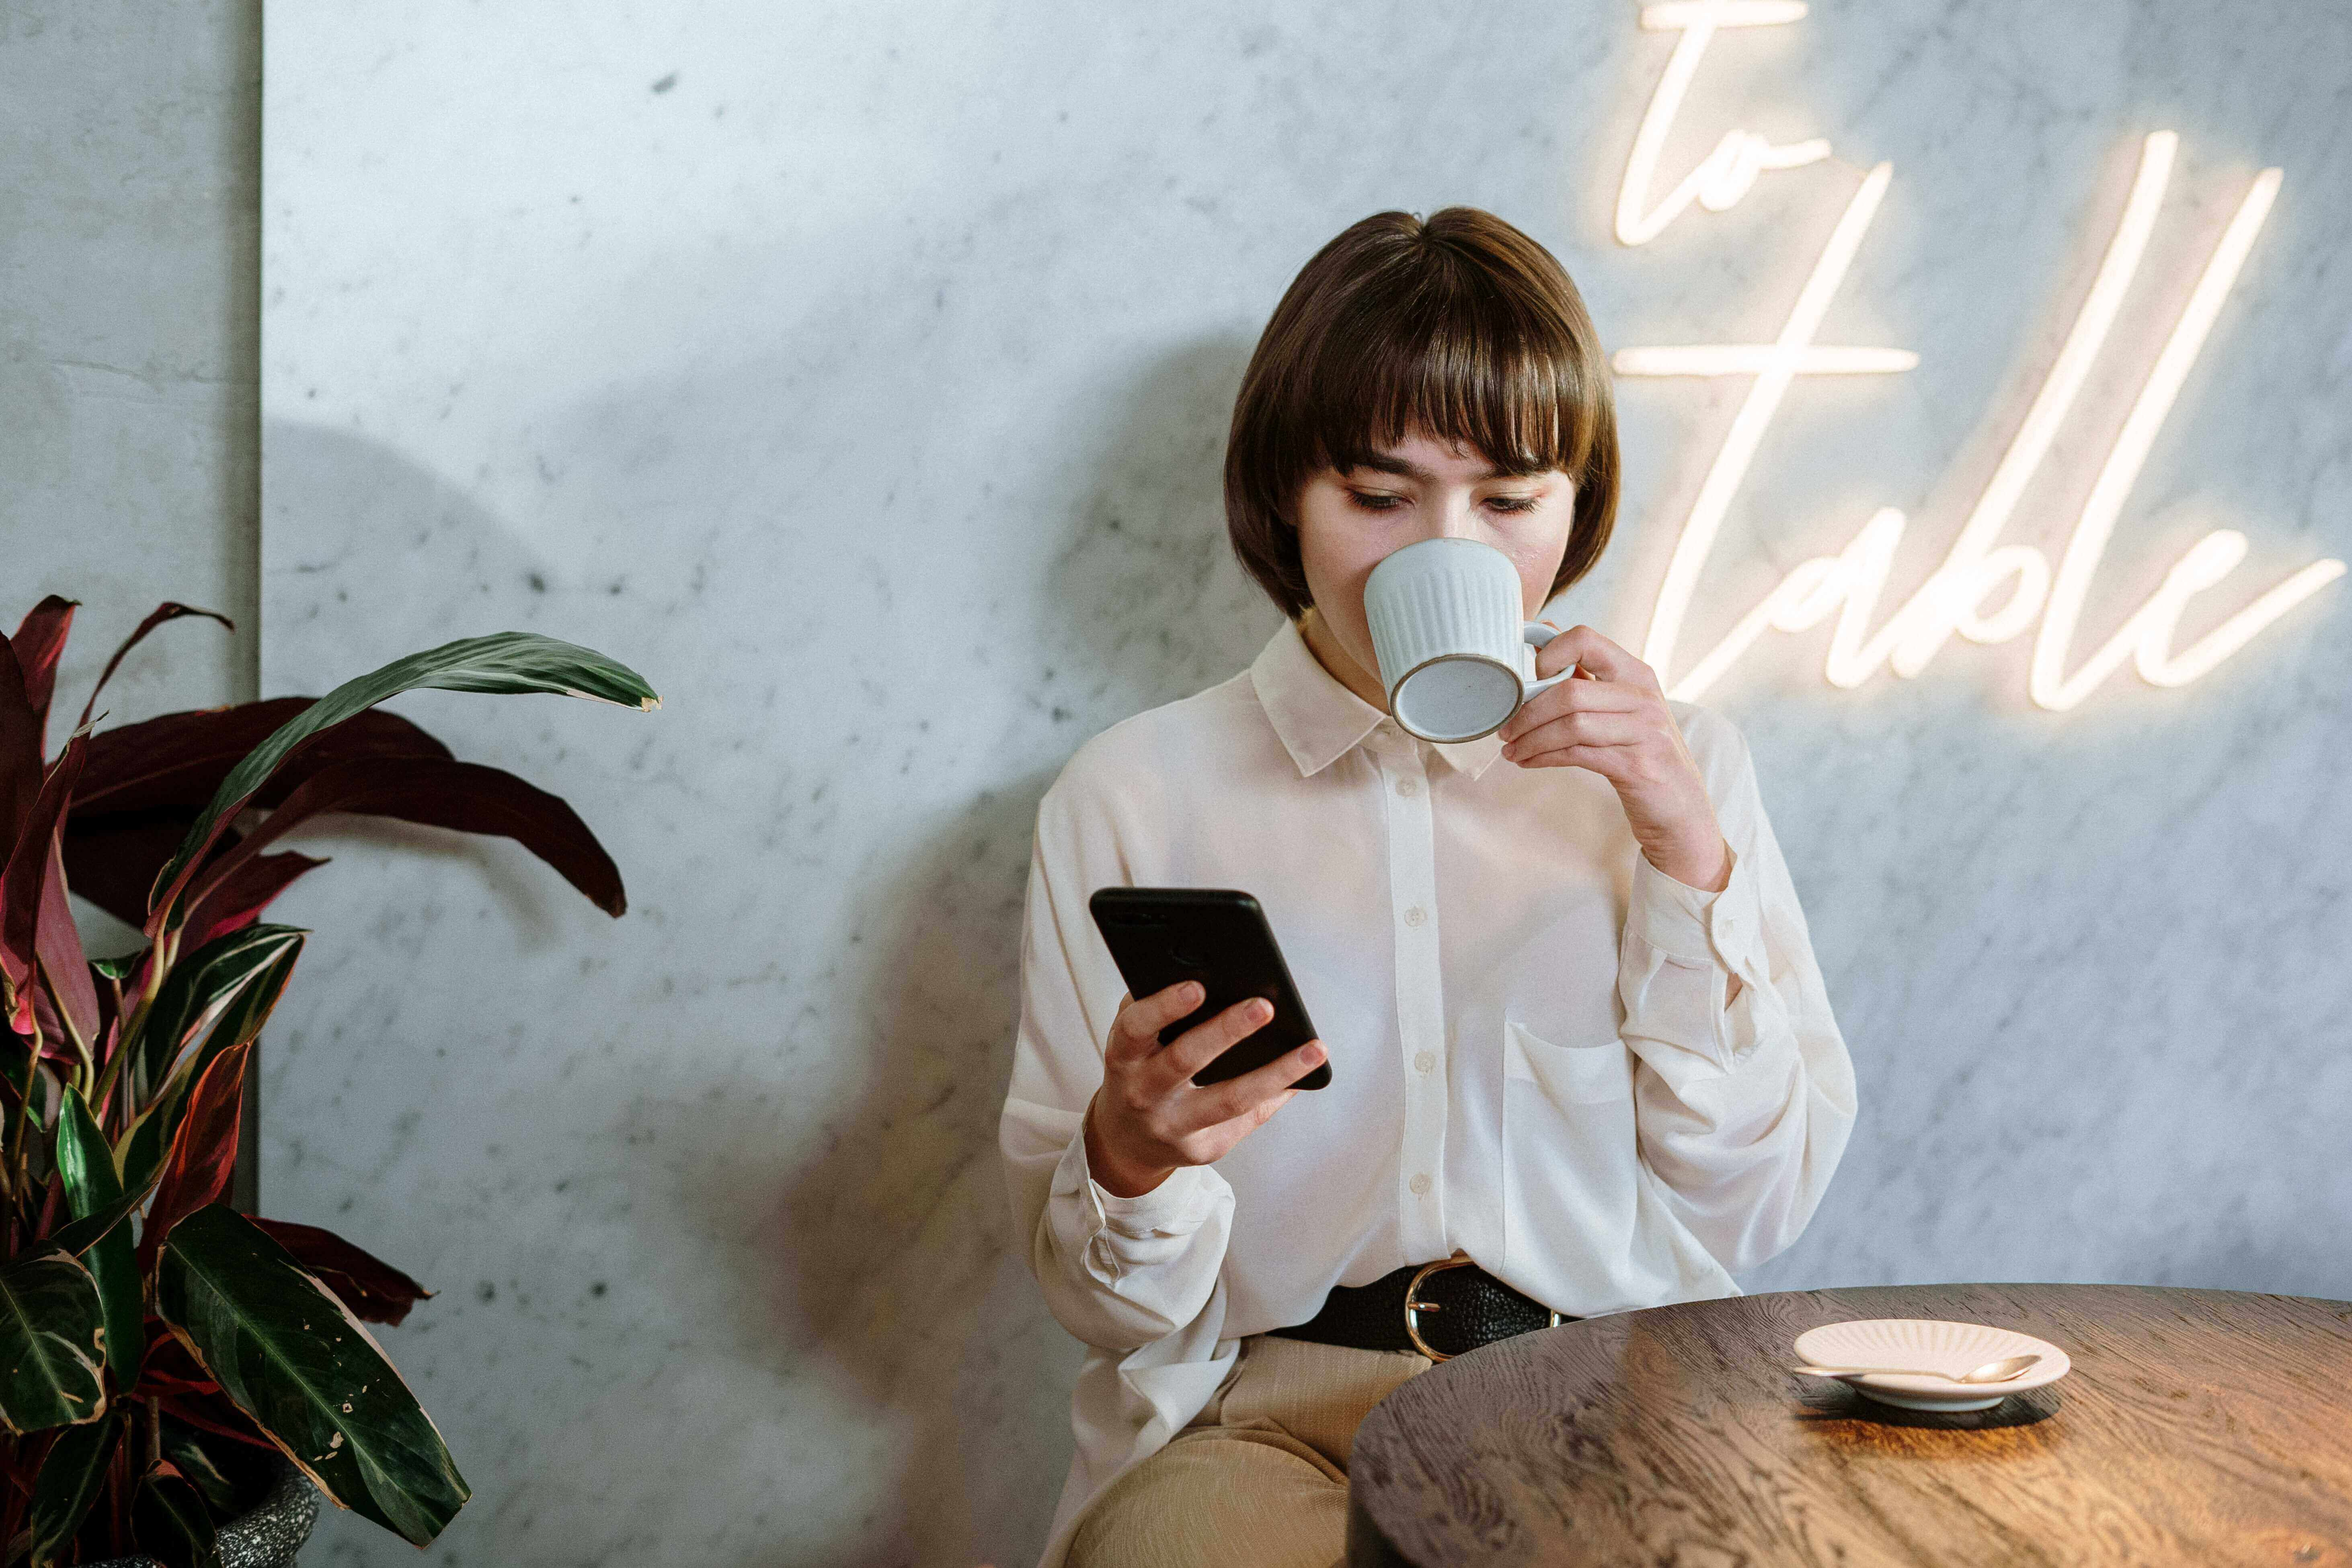 a woman drinking a coffee while looking at an app on her phone